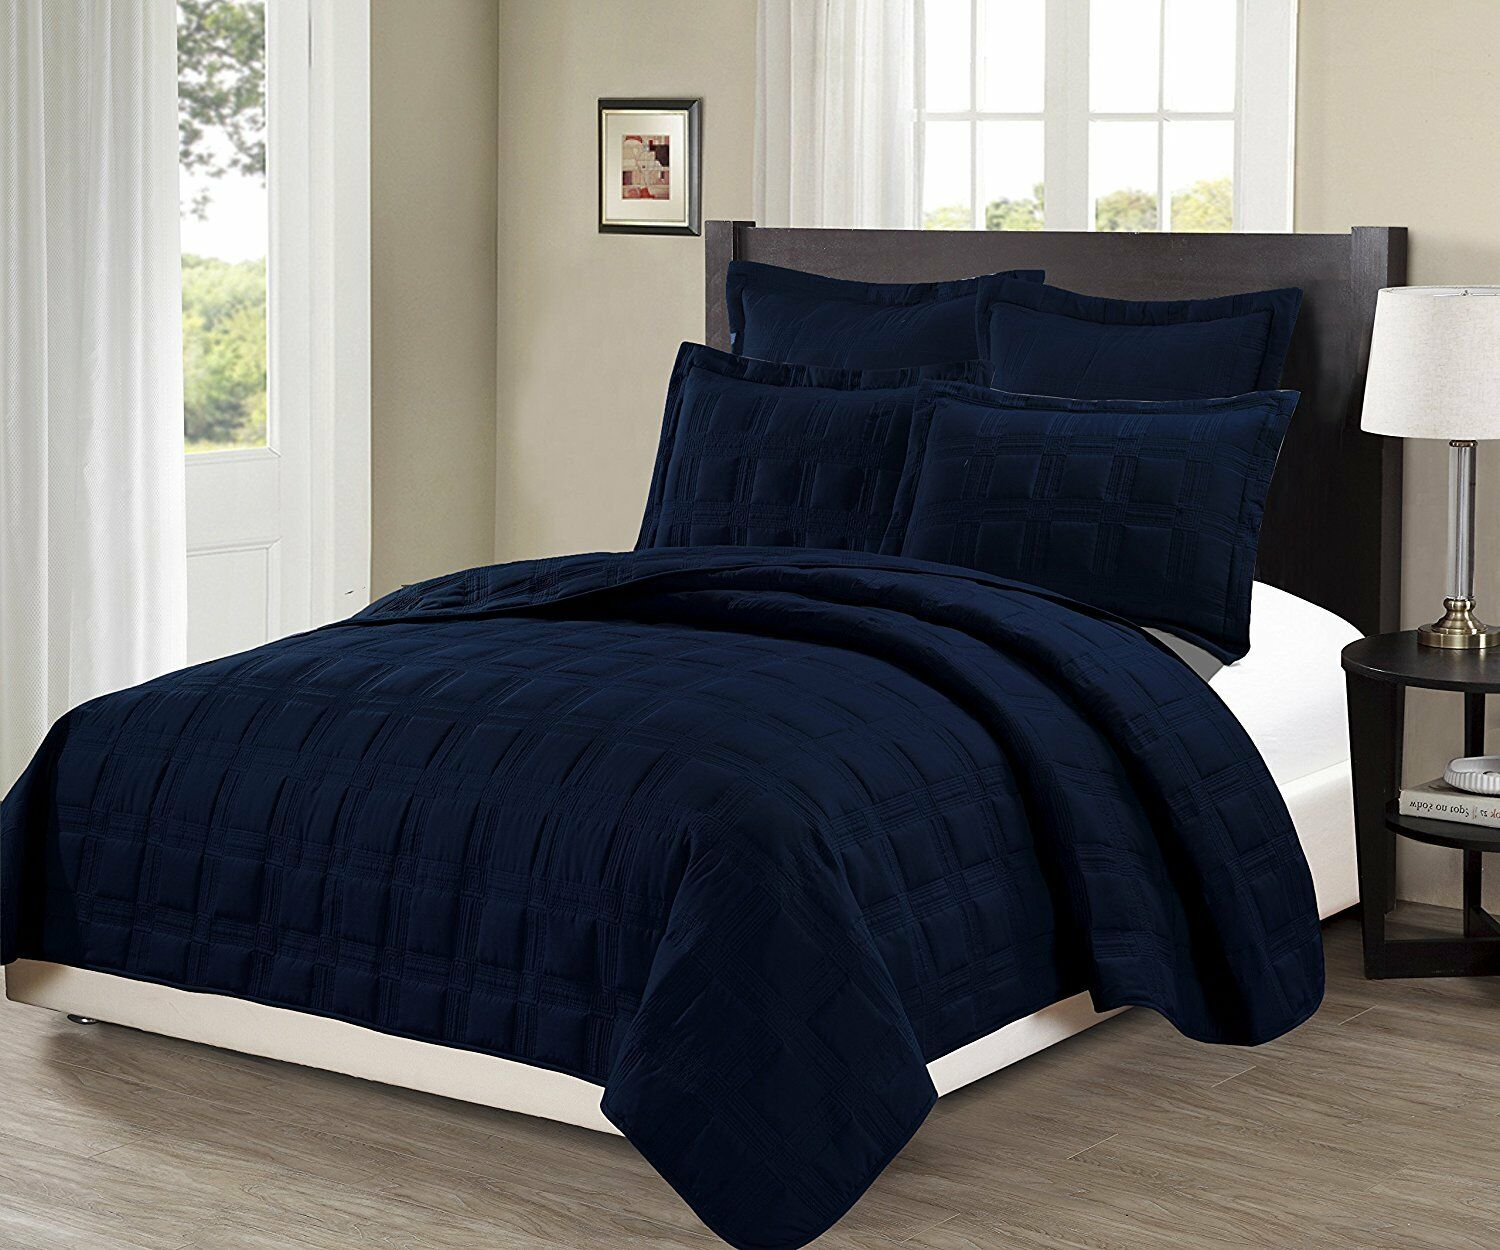 Fancy Linen 3pc Oversize Target Quilted Embroidery Solid Navy bluee Bedspread New